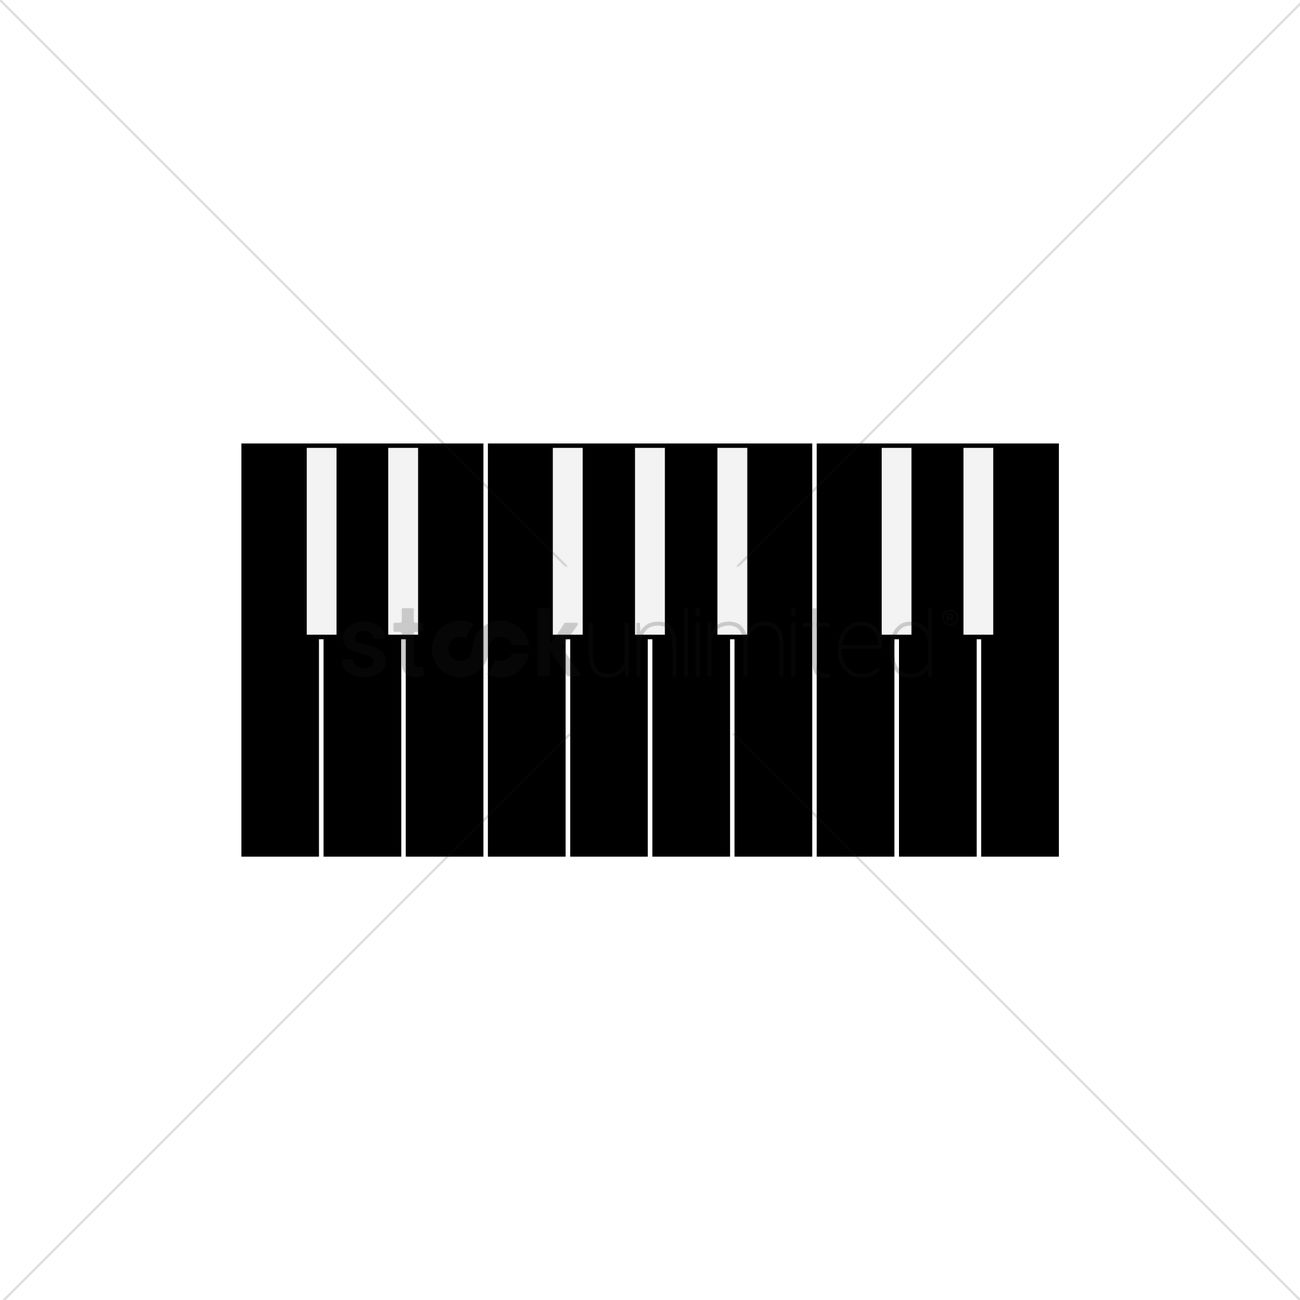 Free Silhouette of piano keys Vector Image - 1461613